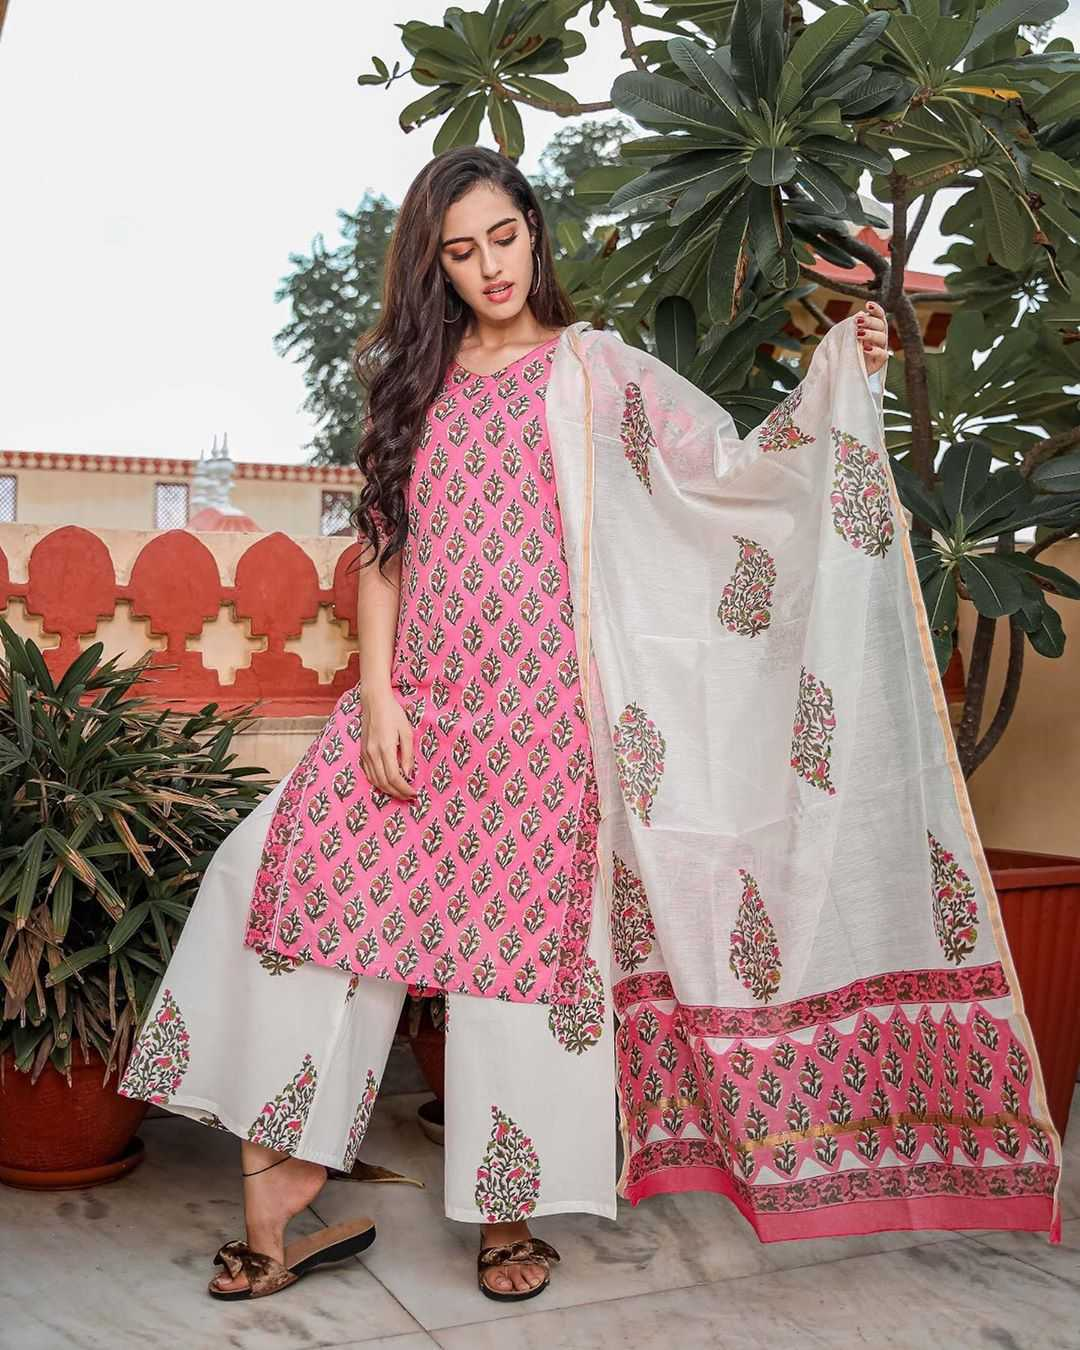 Top 9 Dussehra Outfits Inspirations That Are Trending in 2019 - affordable kurta set